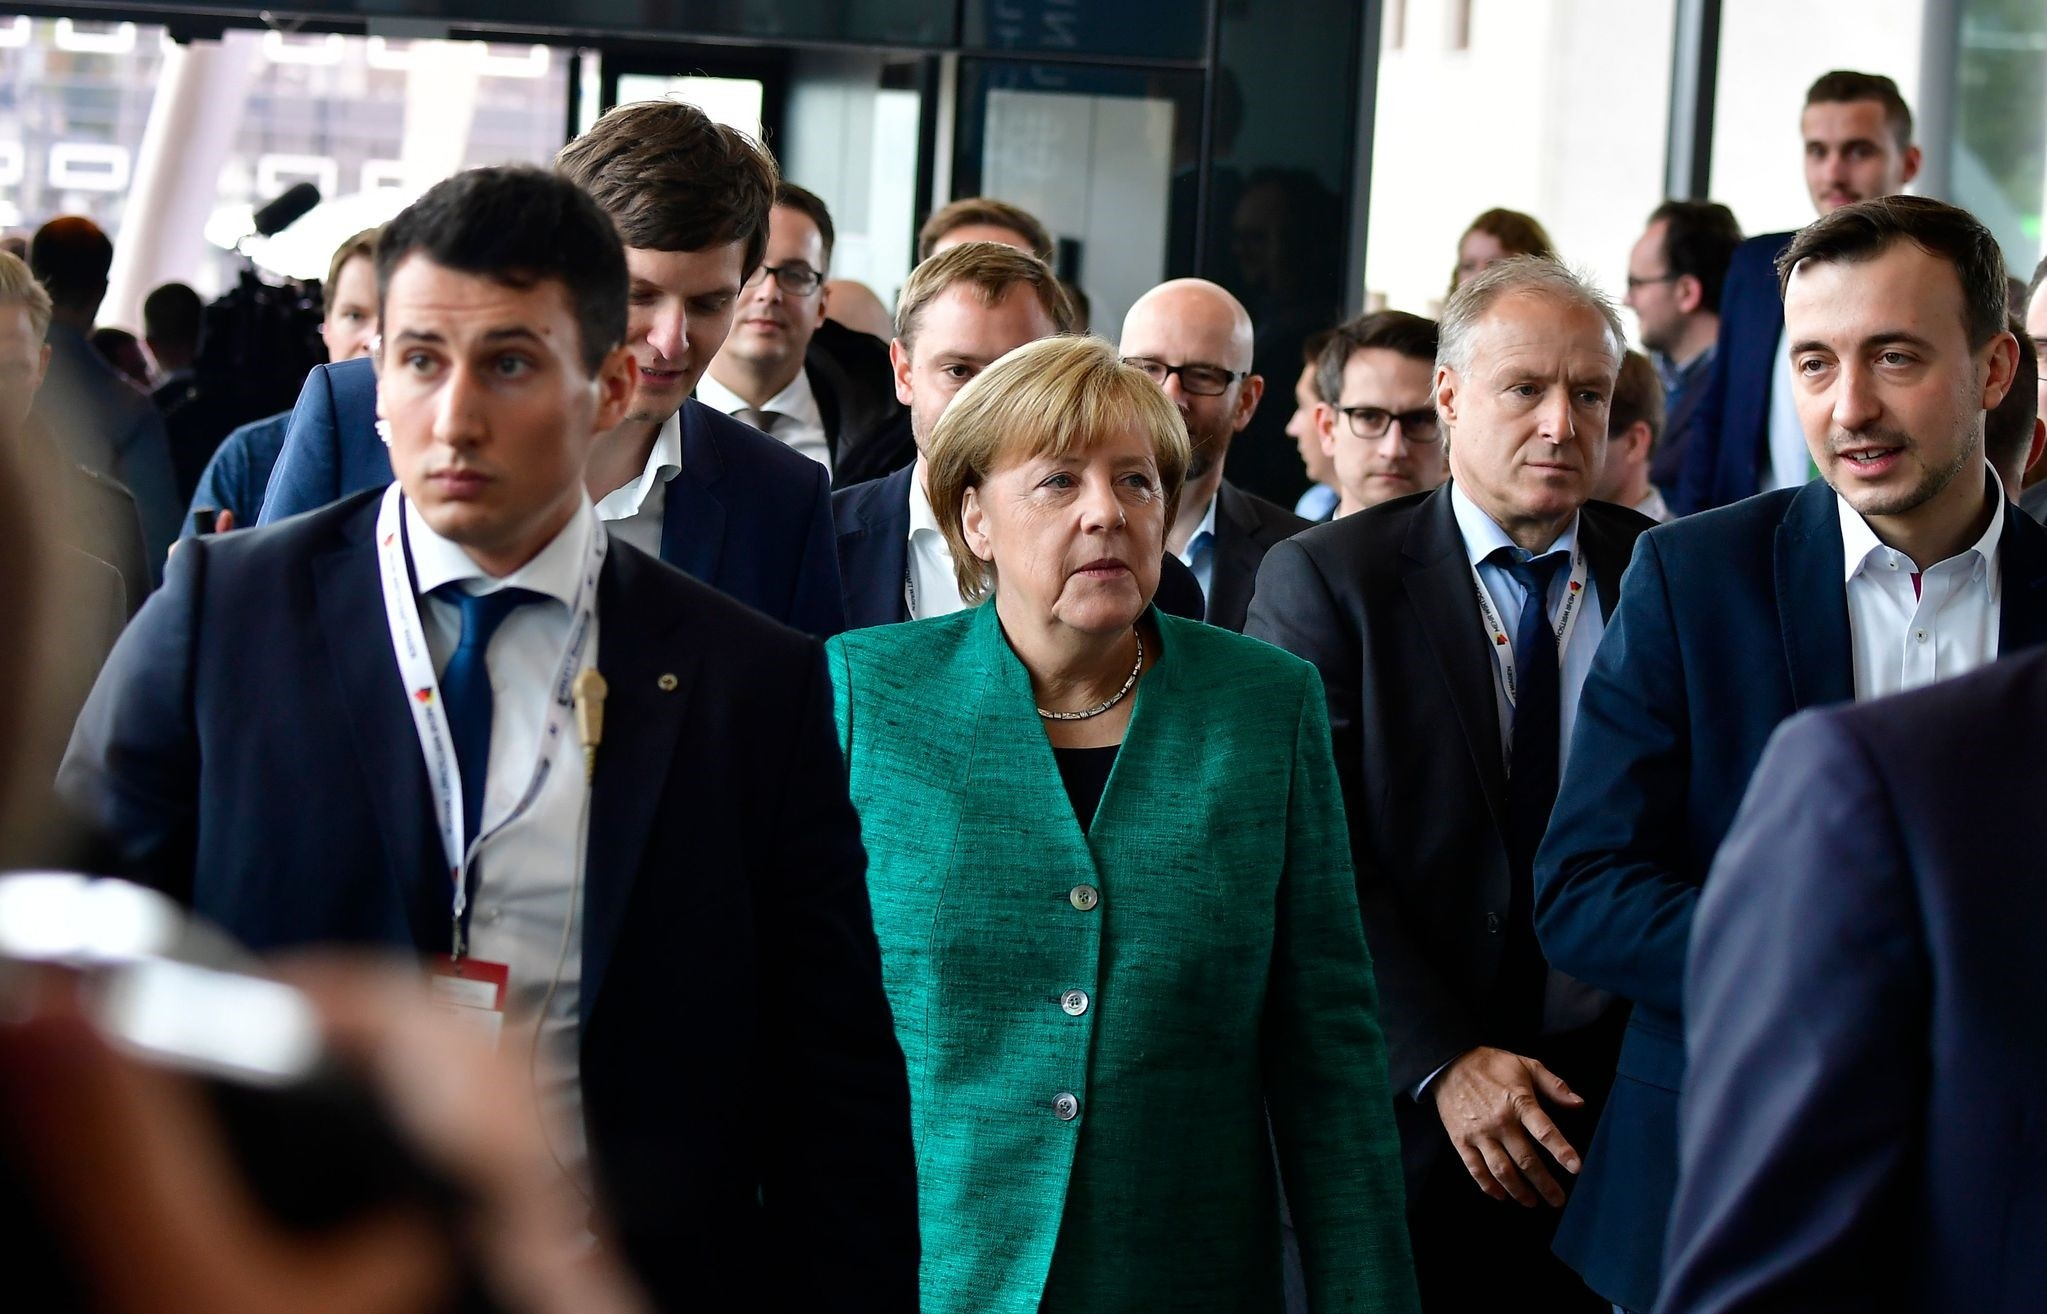 German Chancellor Angela Merkel (C) arrives to attend a congress of the Junge Union Deutschlands (JU, the joint youth organisation of the two conservative parties CDU and CSU) in Dresden. (AFP Photo)